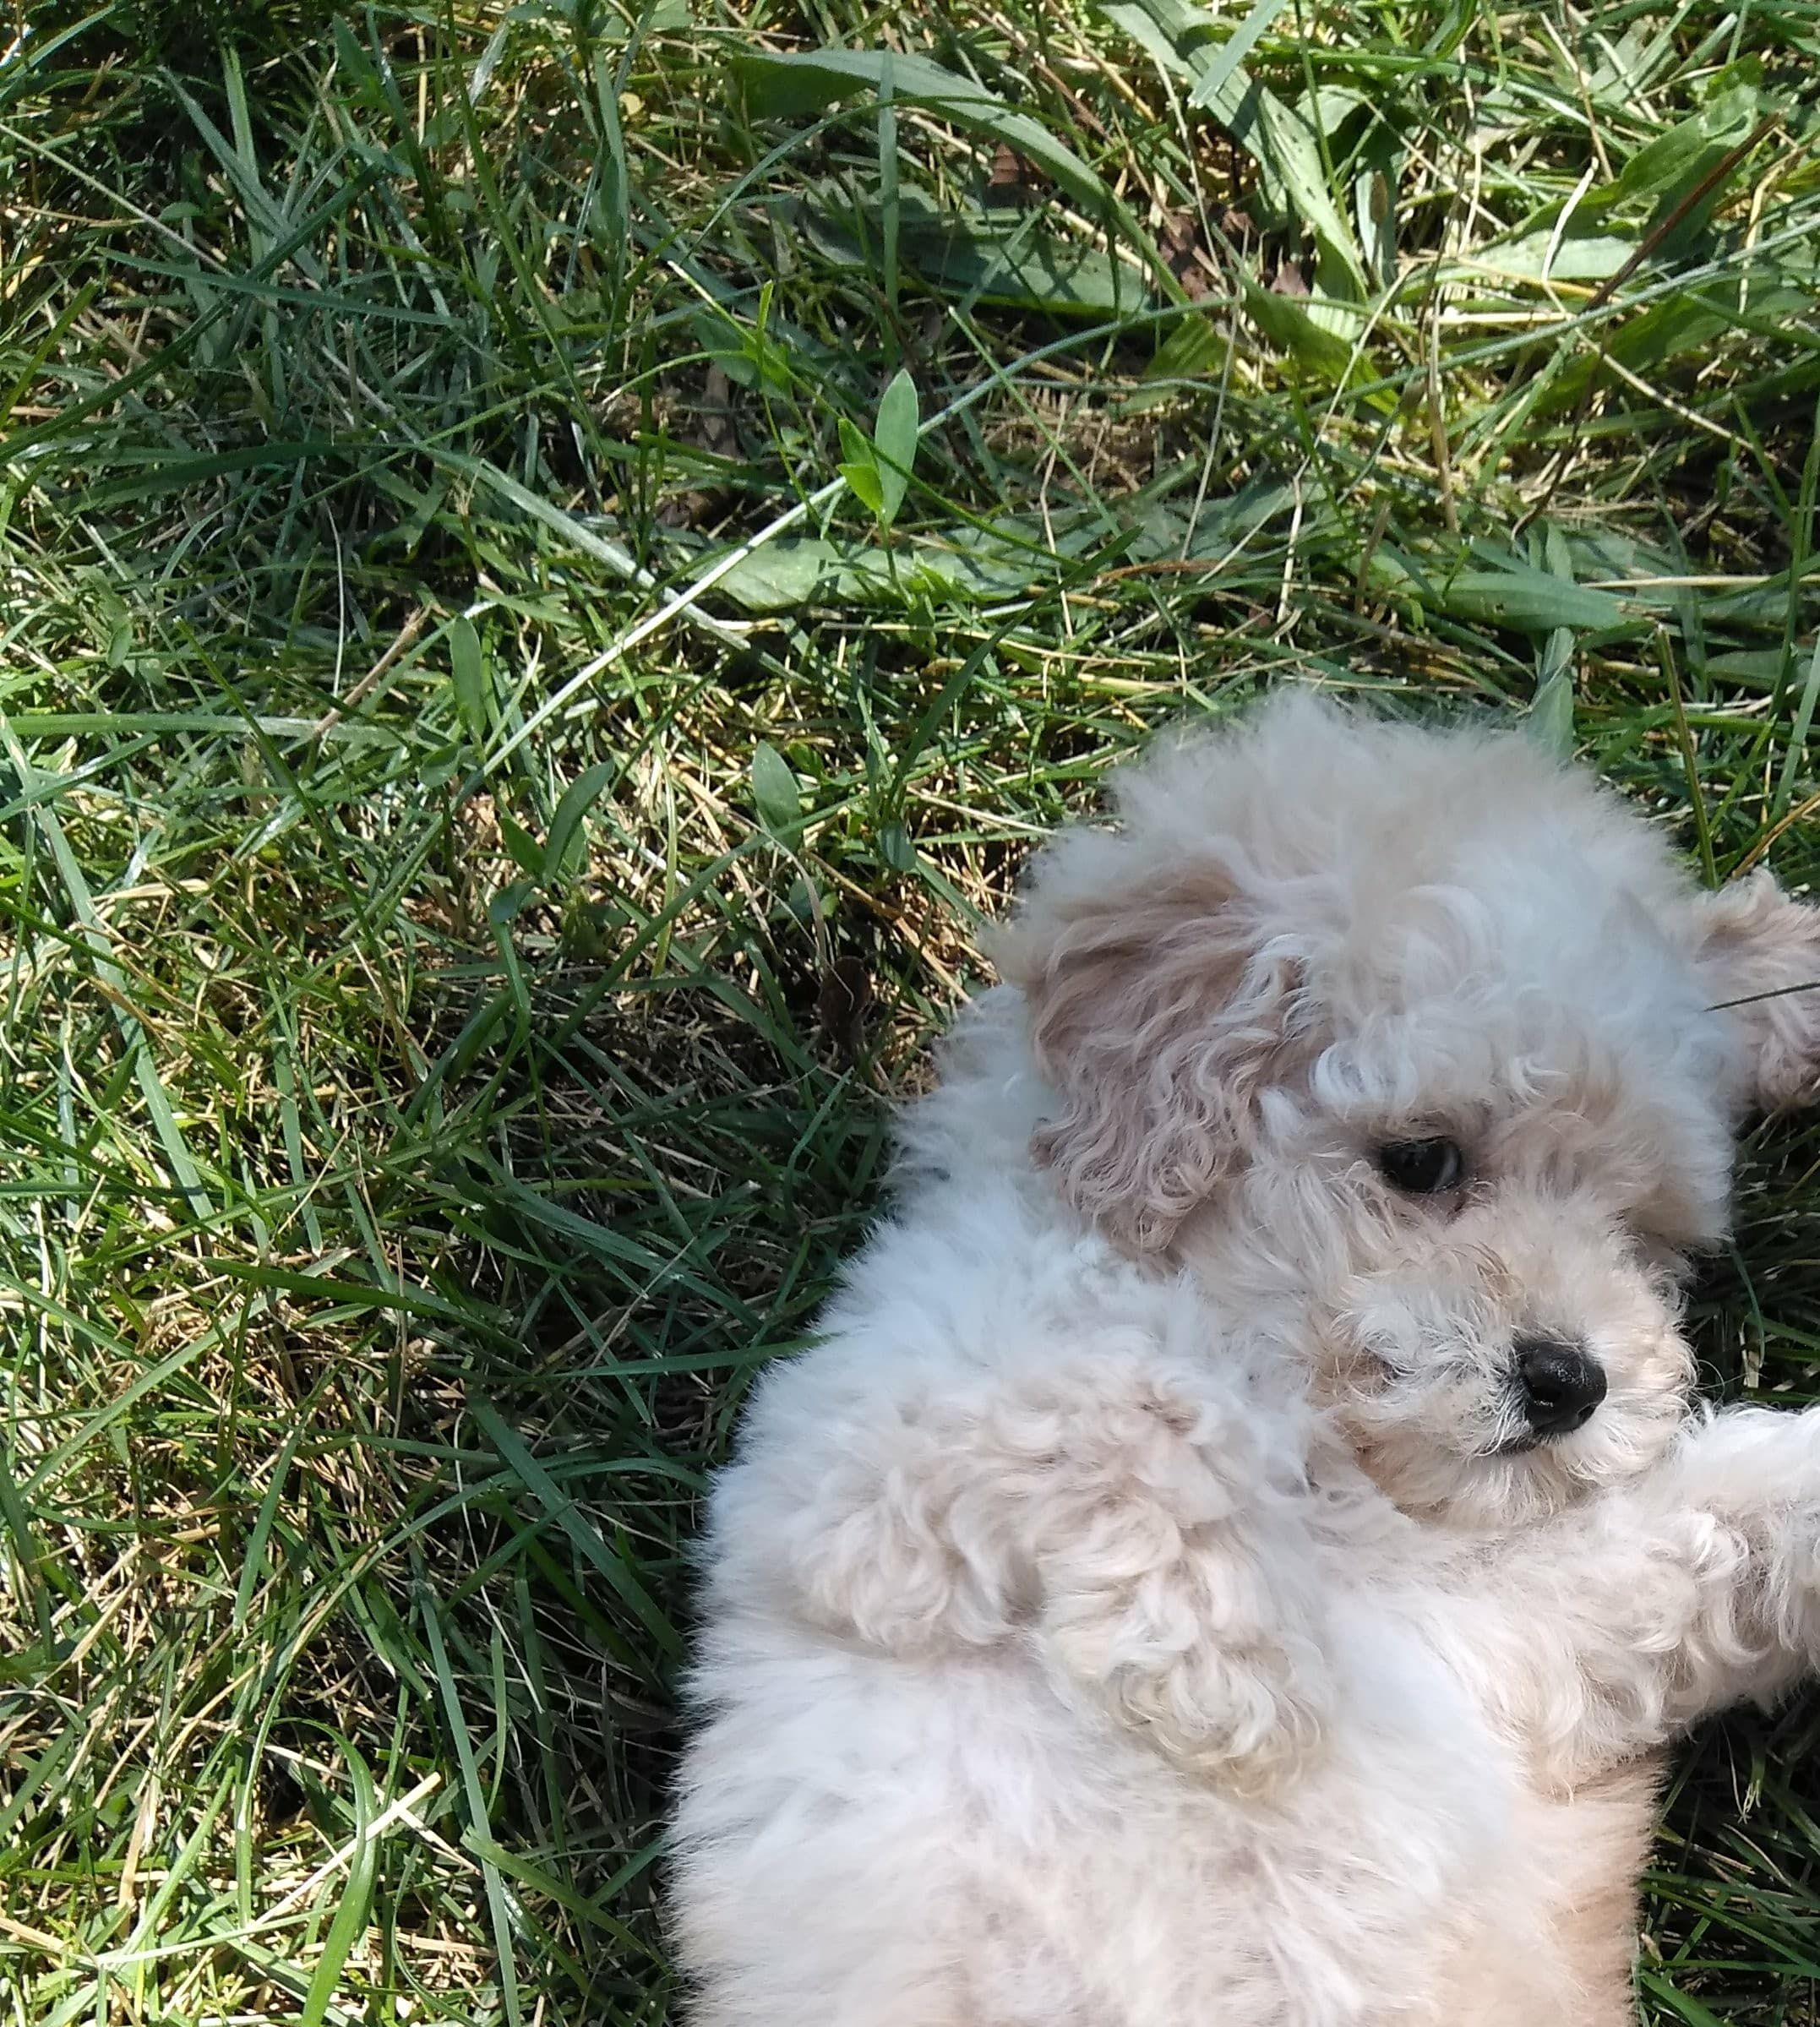 Maltipoo Puppies For Sale Oak Park Il Maltipoo Puppy Maltipoo Puppies For Sale Cute Dogs Breeds